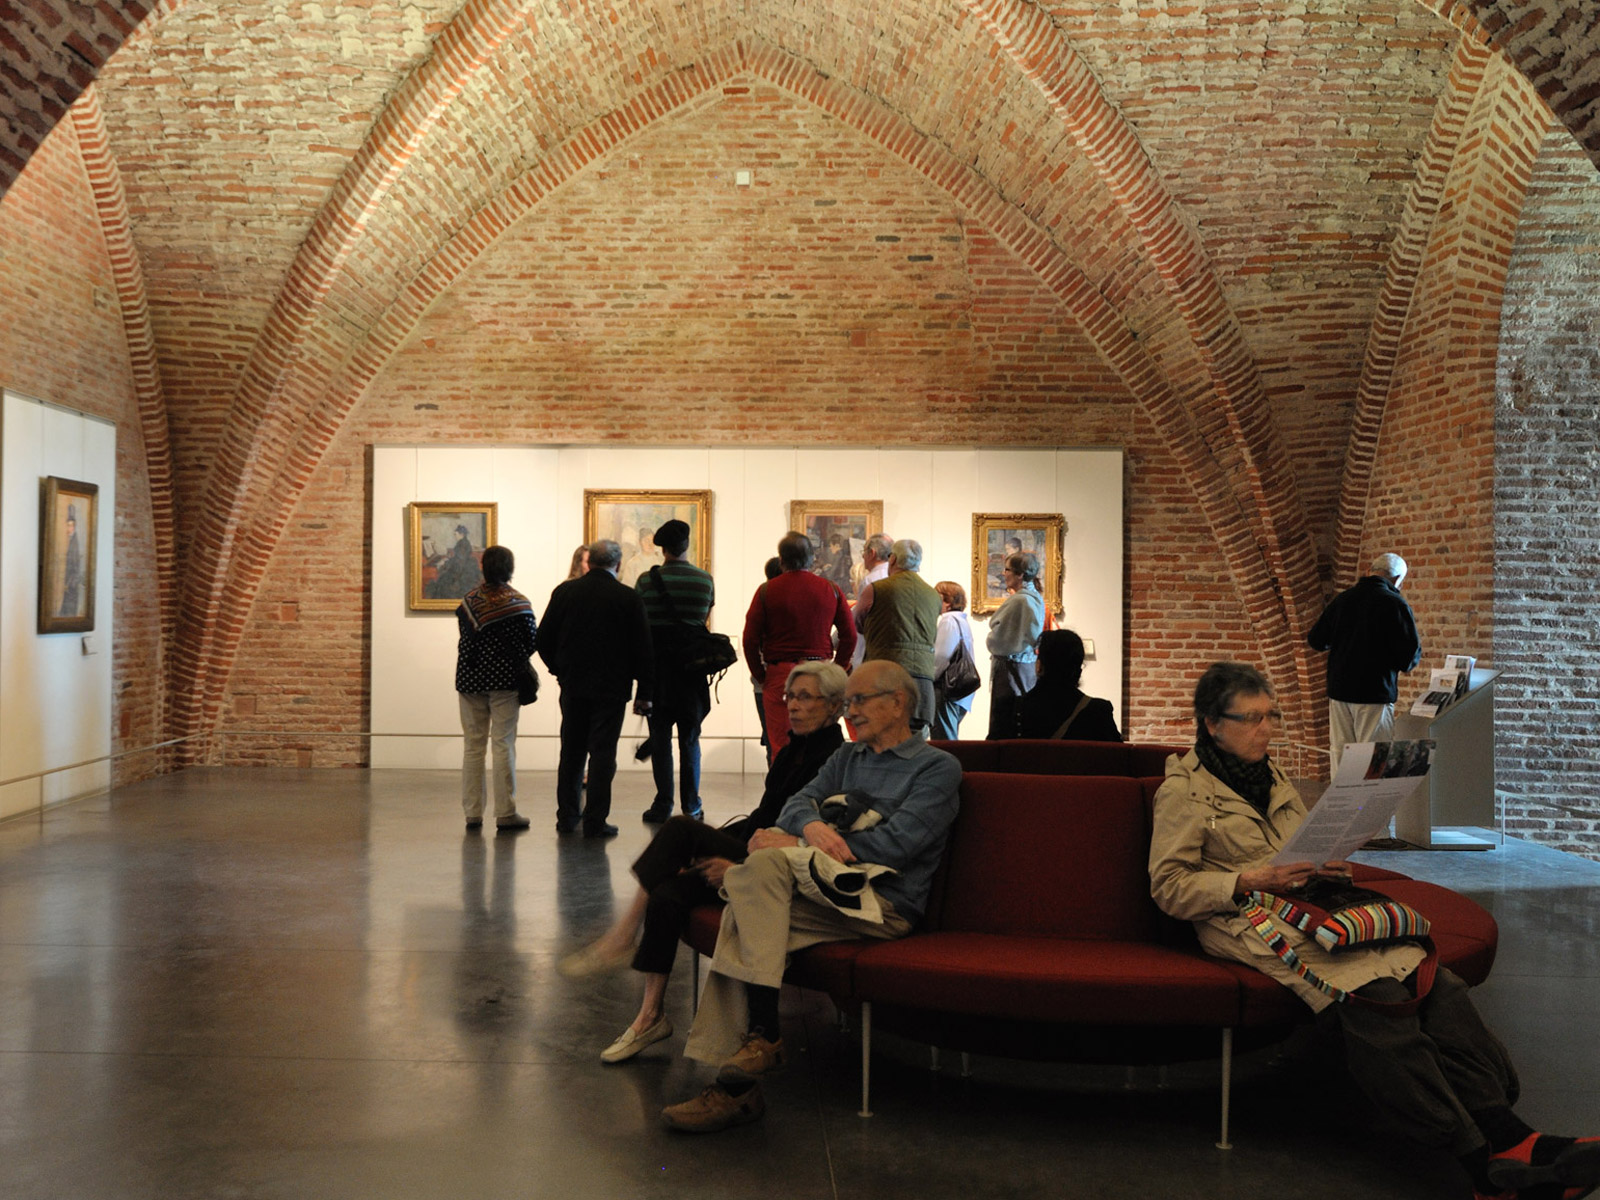 A nicely arched room in the Toulouse Lautrec museum in Albi